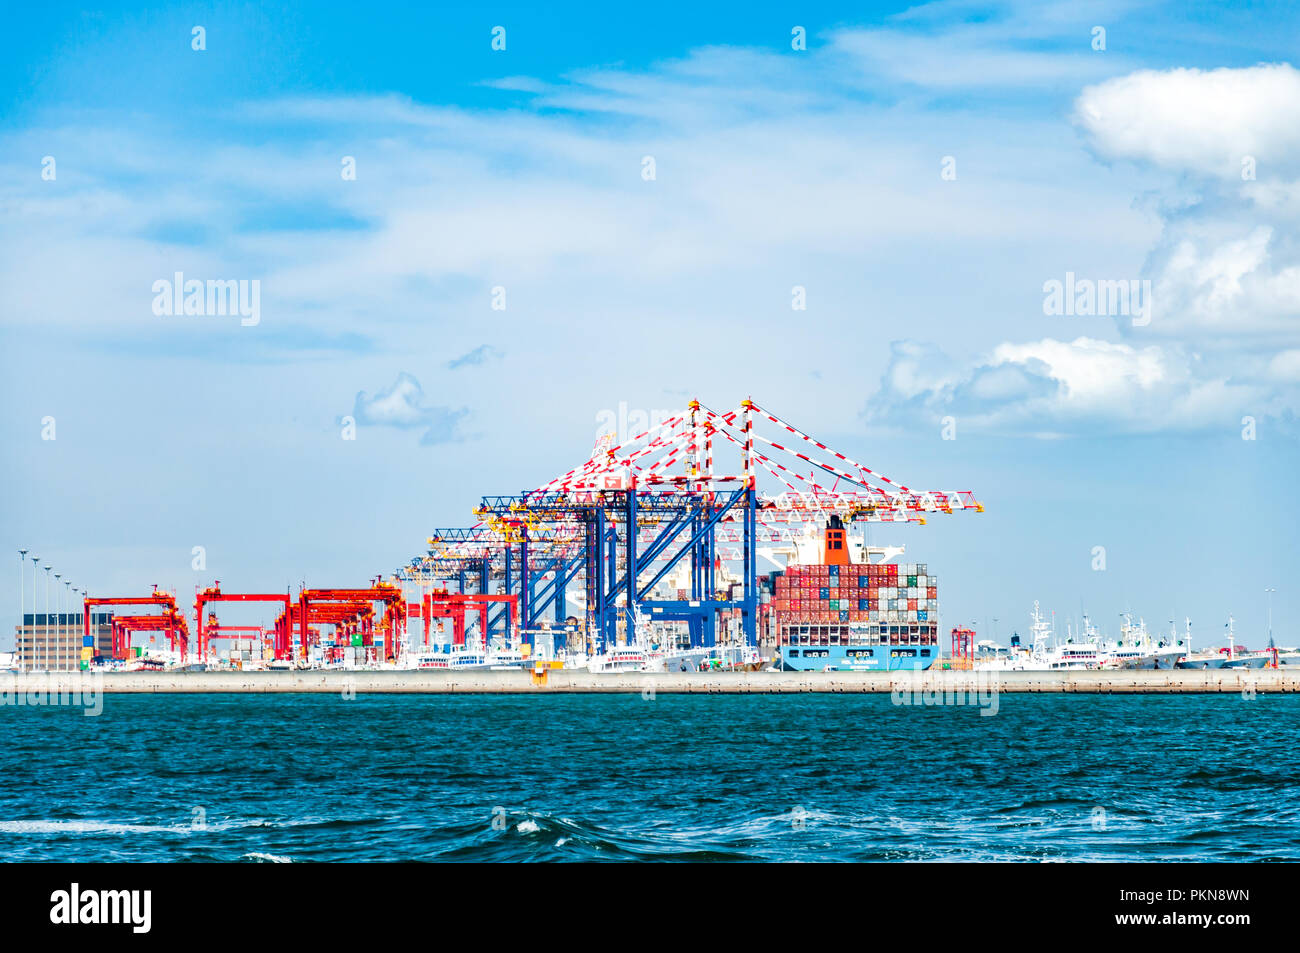 Cranes and container ships in the port of Cape Town, South Africa - Stock Image